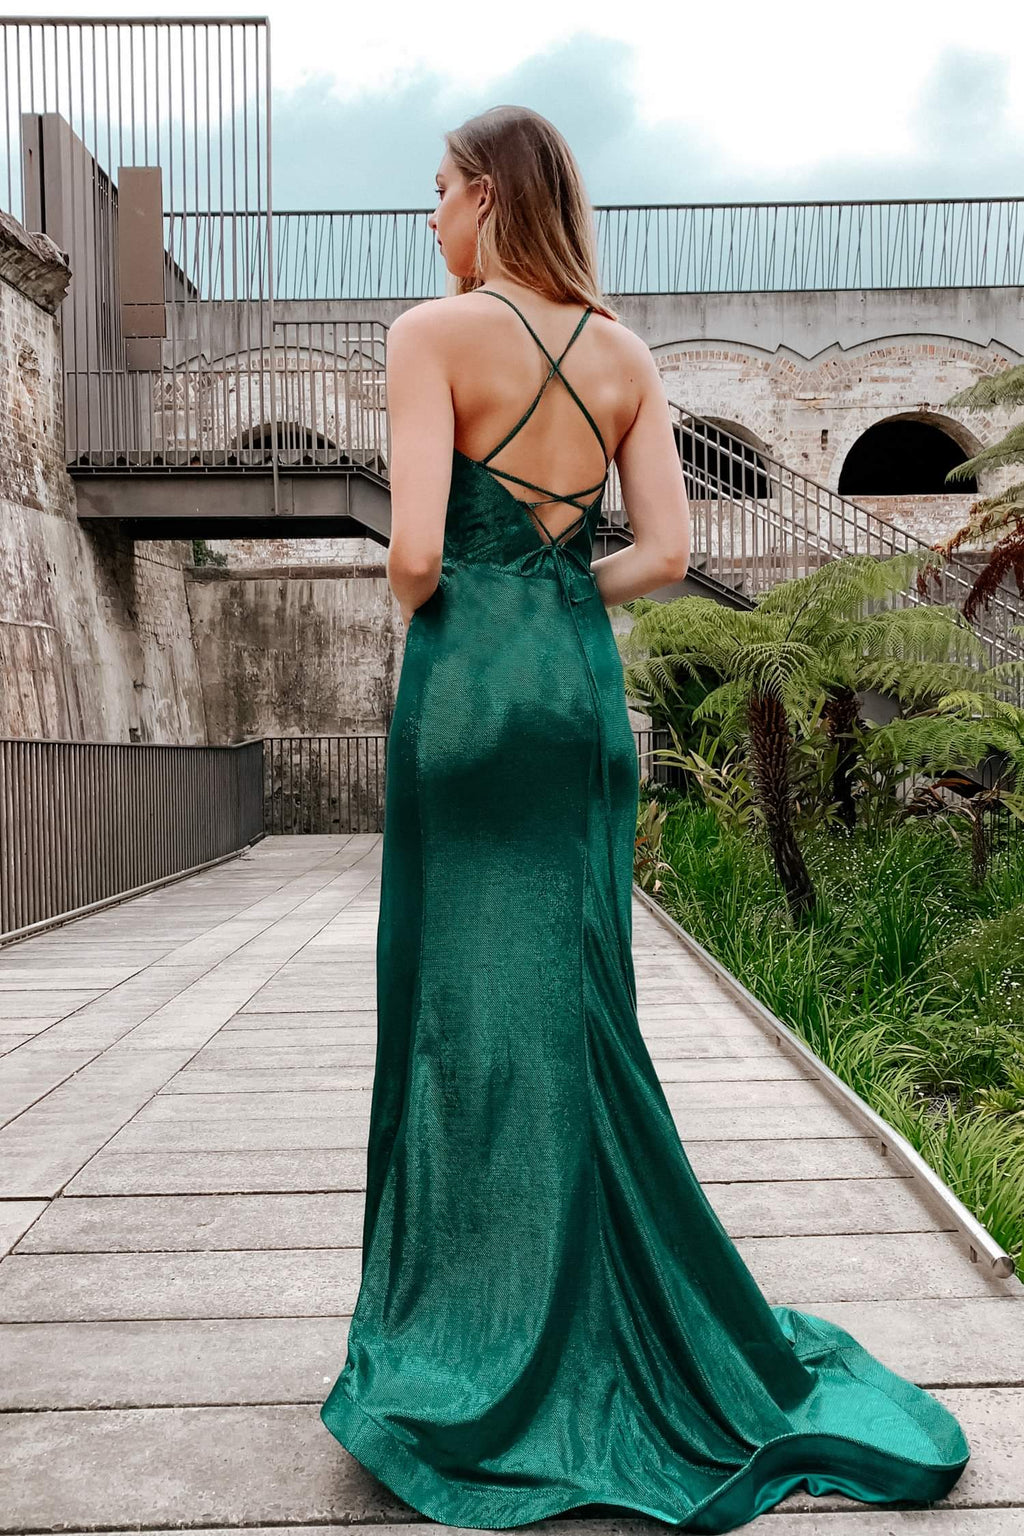 Tinaholy - TA821 Emerald green gown